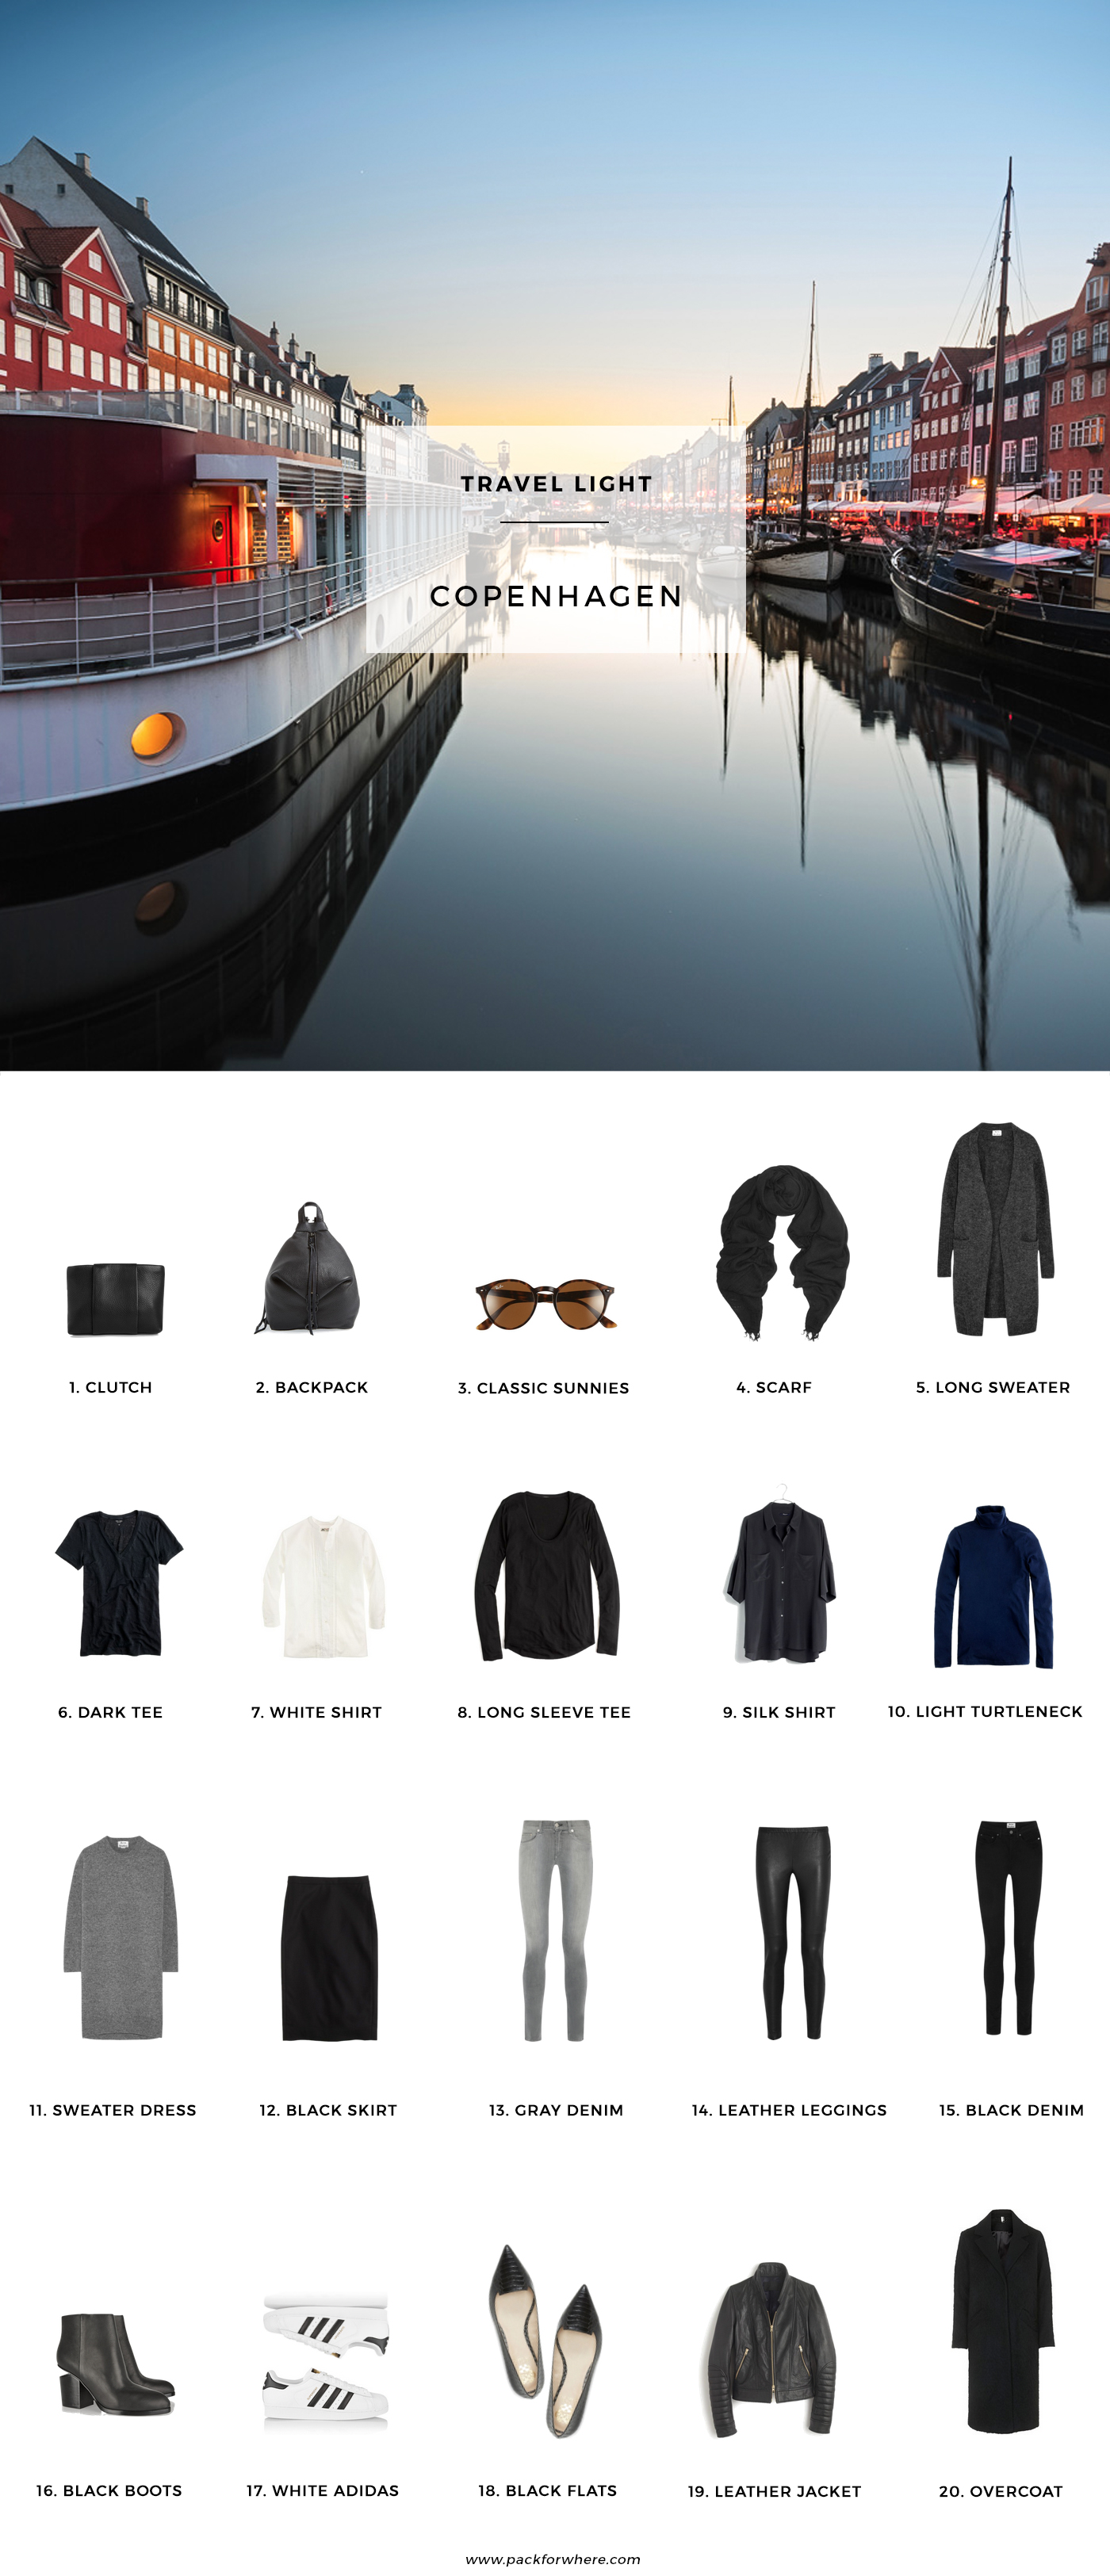 What to pack for Copenhagen, Denmark in the Fall. Includes carry-on travel light packing list. 20 items, 10 outfits, 1 carry-on. Fall packing list for Copenhagen. #travellight #packinglight #minimalism #copenhagen #cphfw